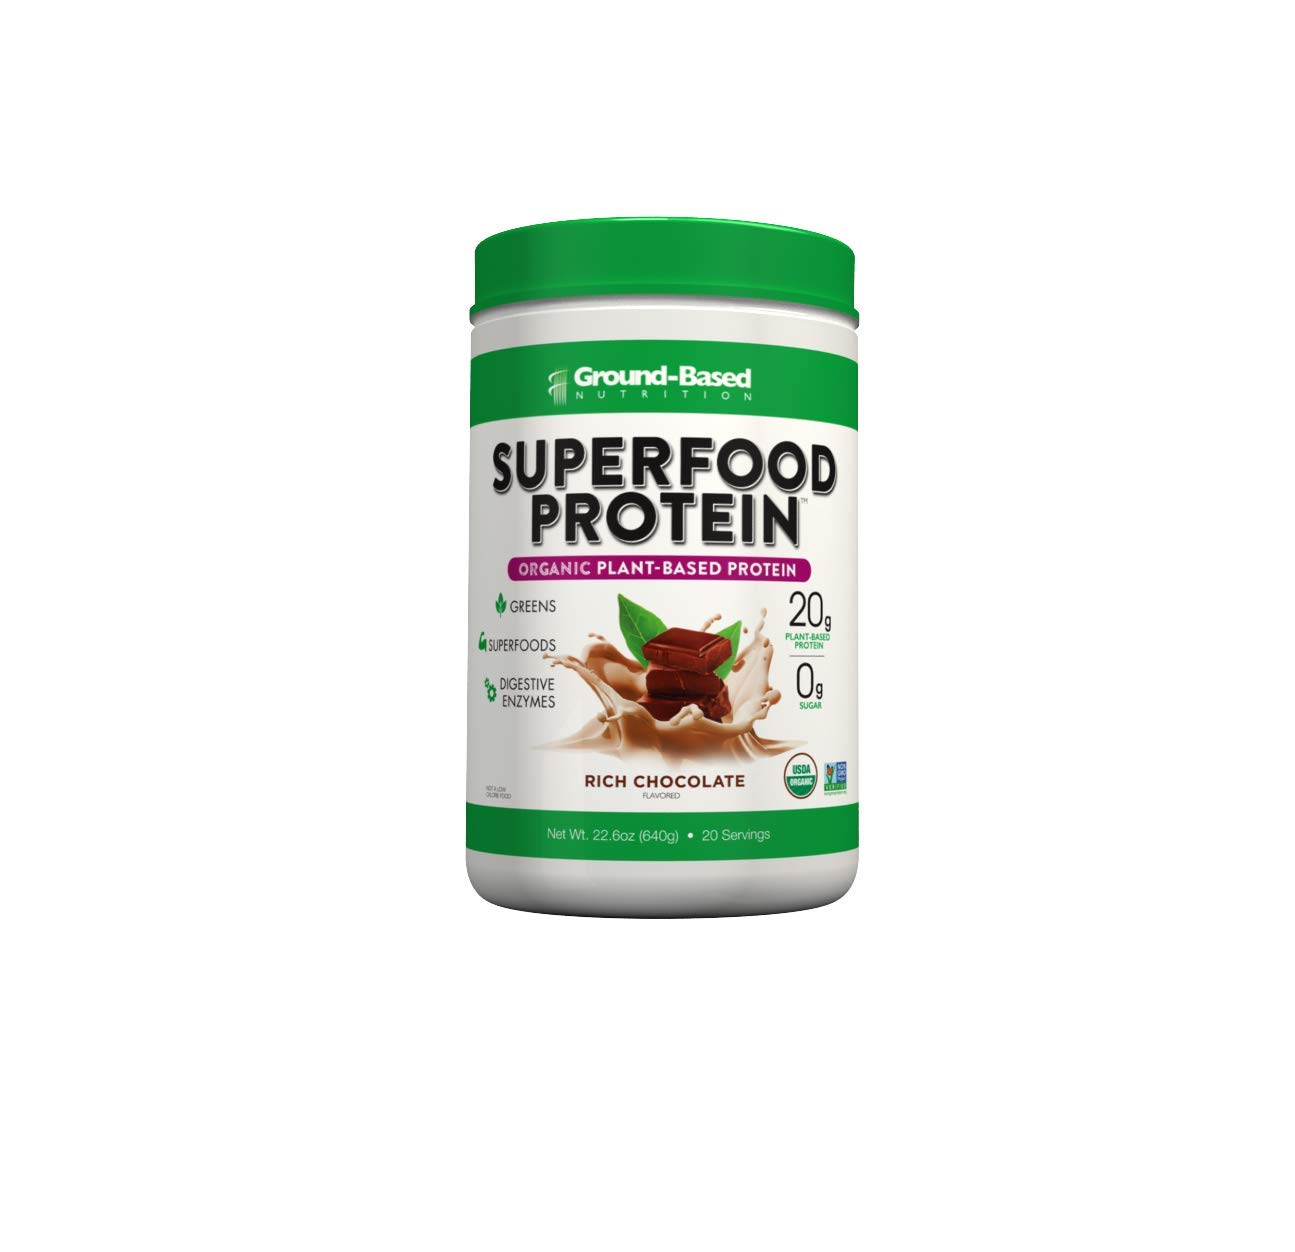 Plant-Based Organic Superfood Protein - Zero Carb Plant-Based Protein- Raw Food Protein Powder | All Natural Formula, Vegan, Sugar Free, Rich Chocolate, Vegan, Non-GMO, 20 Svgs by Ground-Based Nutrition